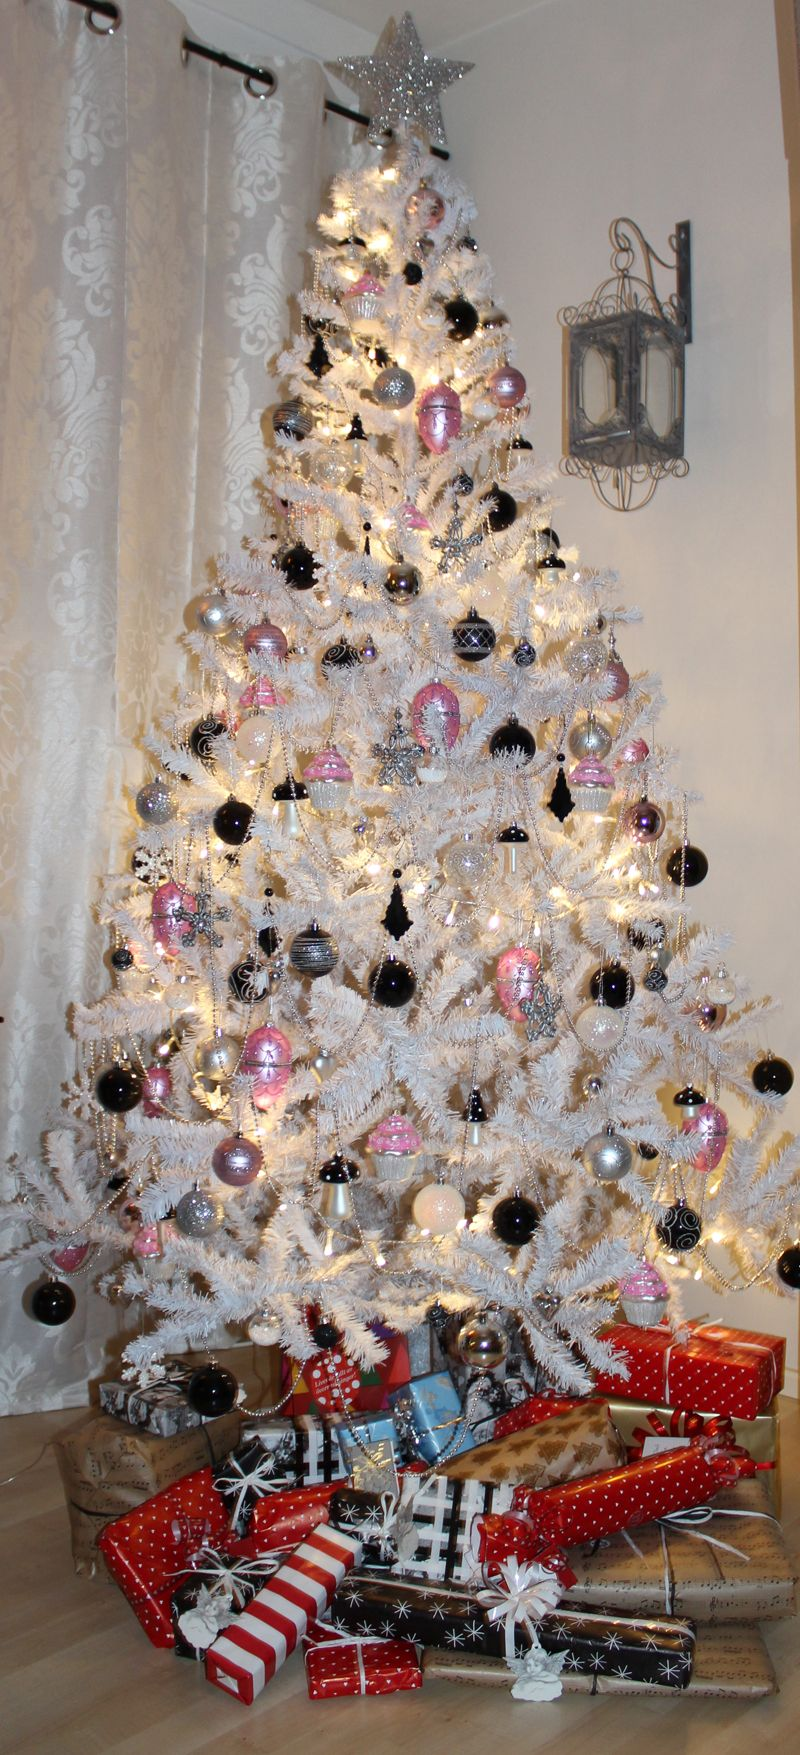 Color schemes for christmas trees - Black White And Silver Christmas Tree Decorations White Christmas Tree With Black Pink And Silver